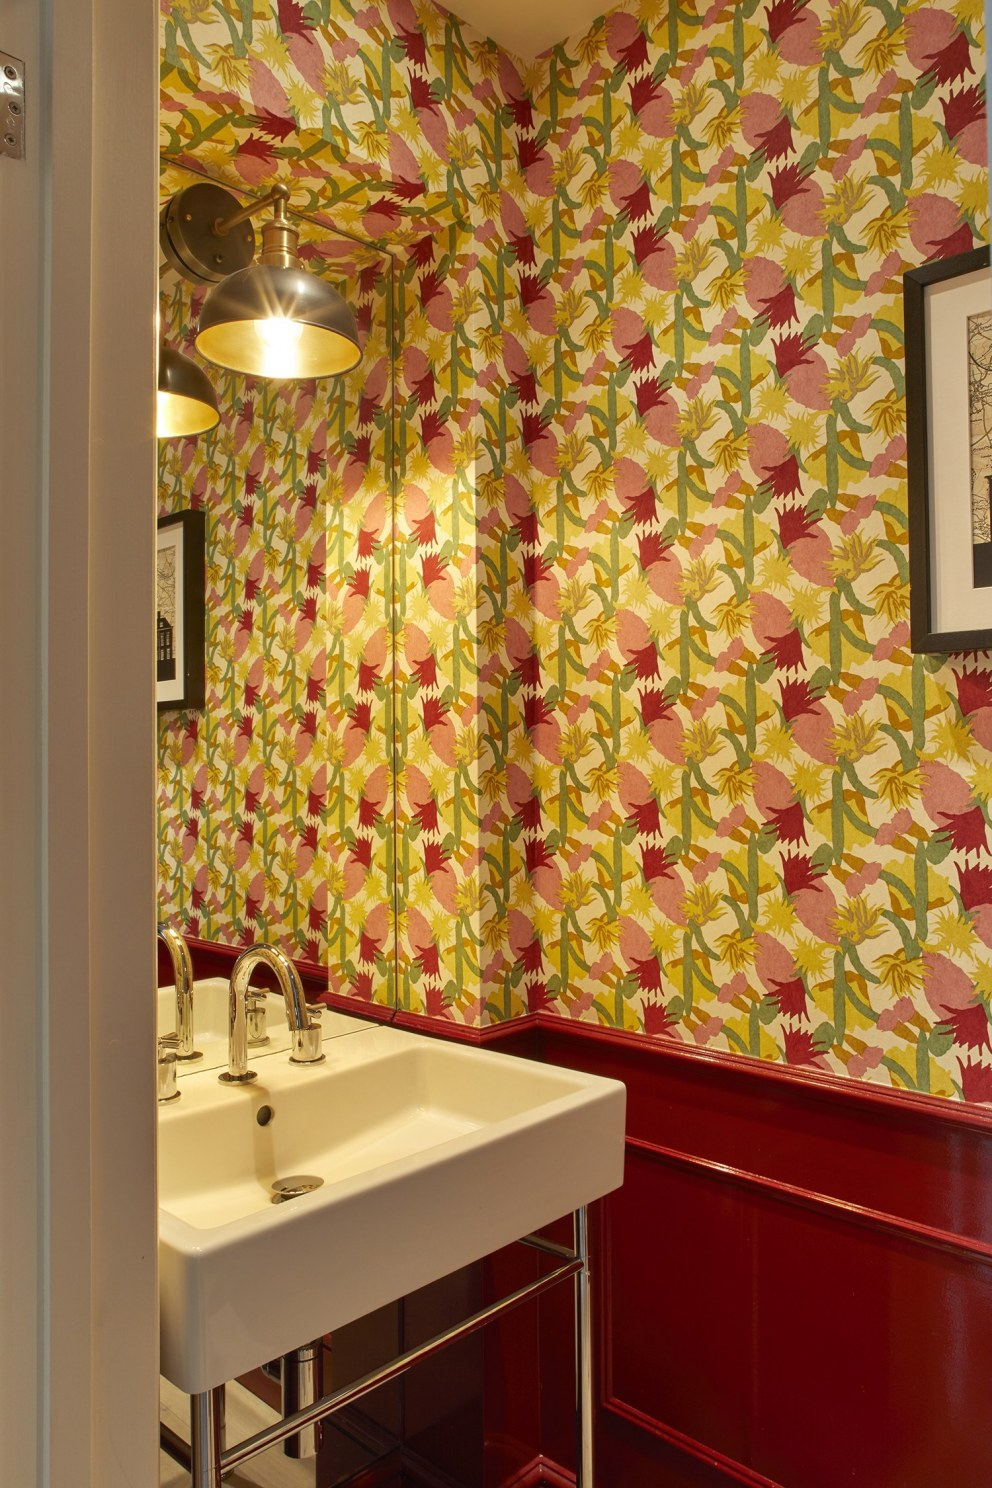 West Kensington Family Home | Guest WC | Interior Designers